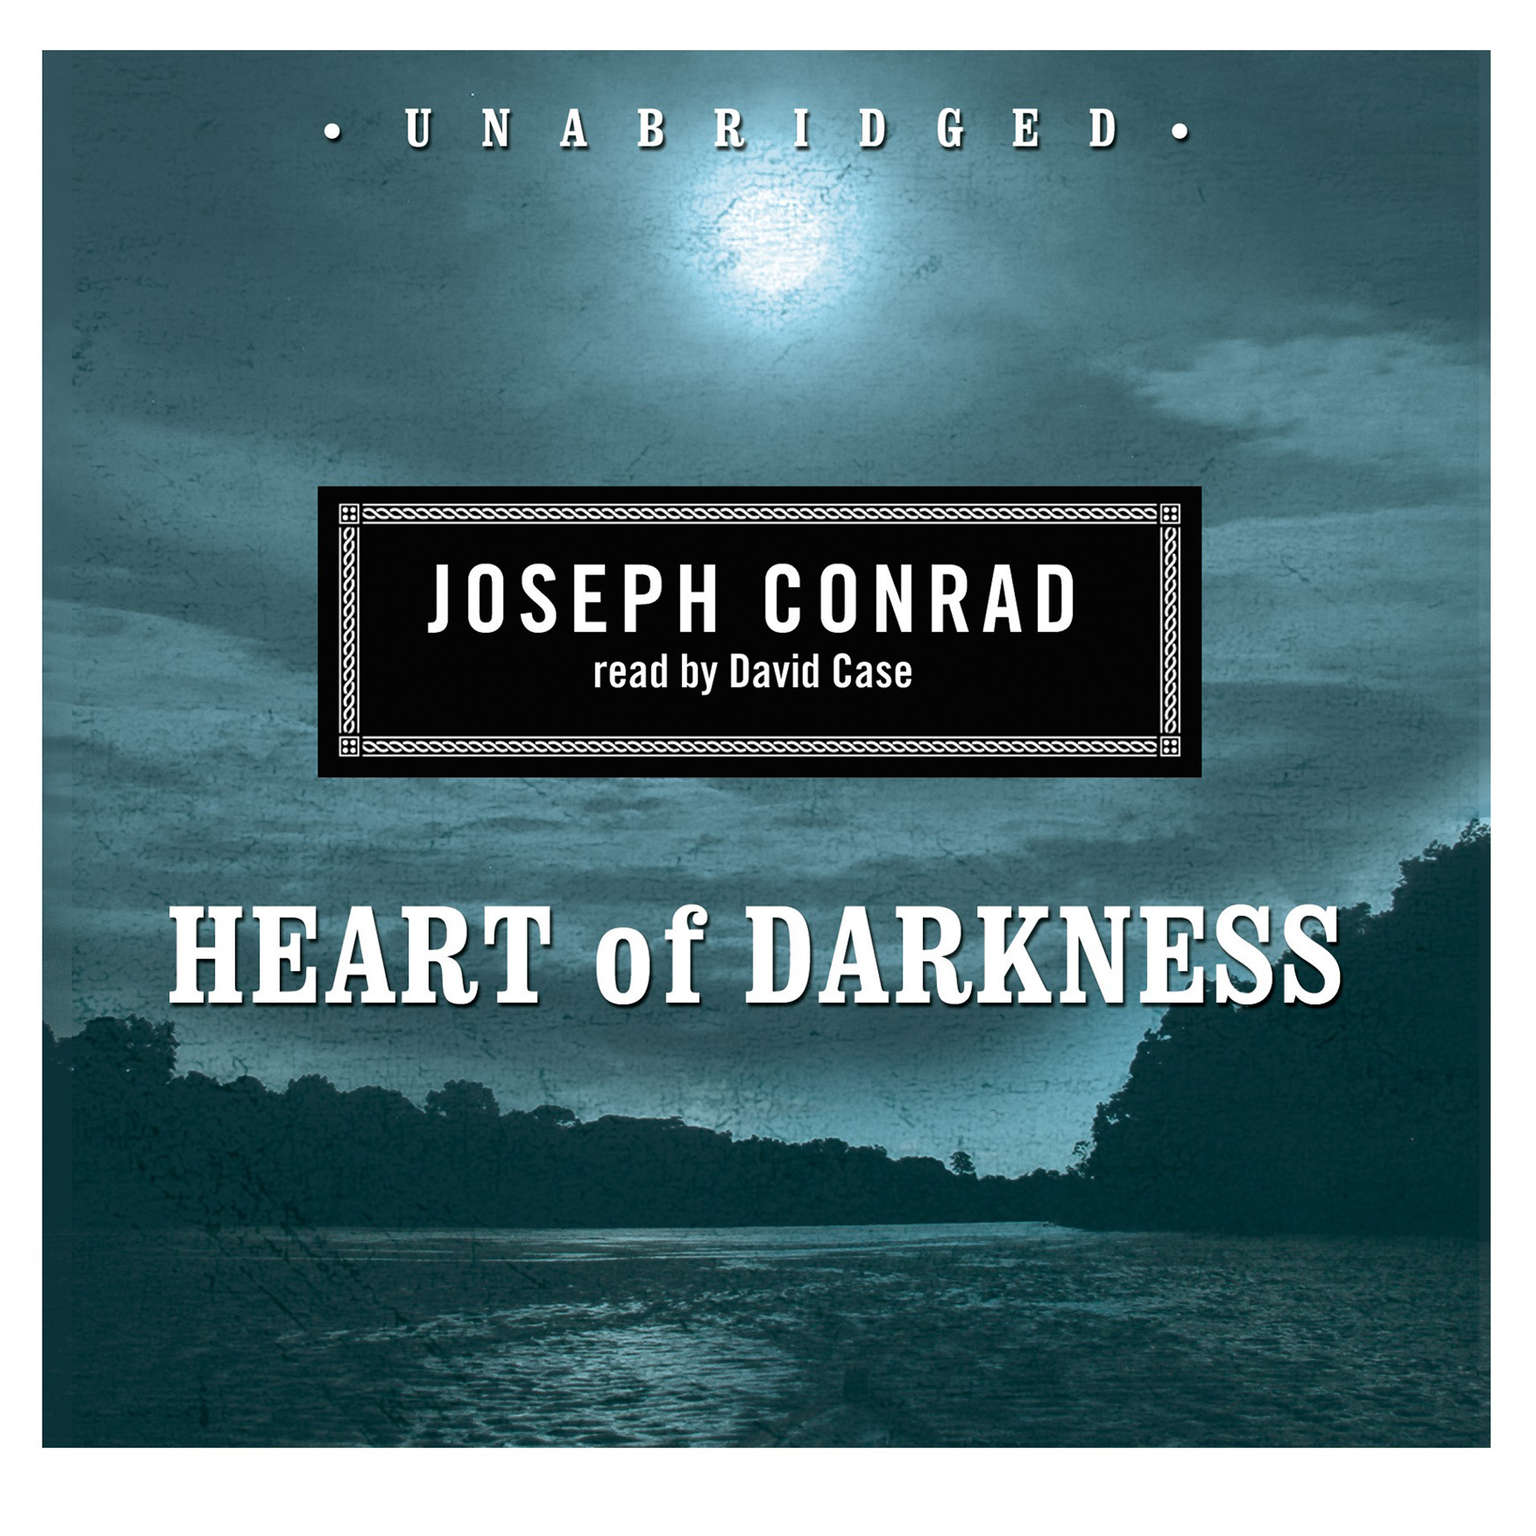 essays on heart of darkness by joseph conrad Joseph conrad's novel heart of darkness uses character development and character analysis to really tell the story of european colonization within conrad's characters one can find both racist and colonialist views, and it is the opinion, and the interpretation of the reader which decides what.